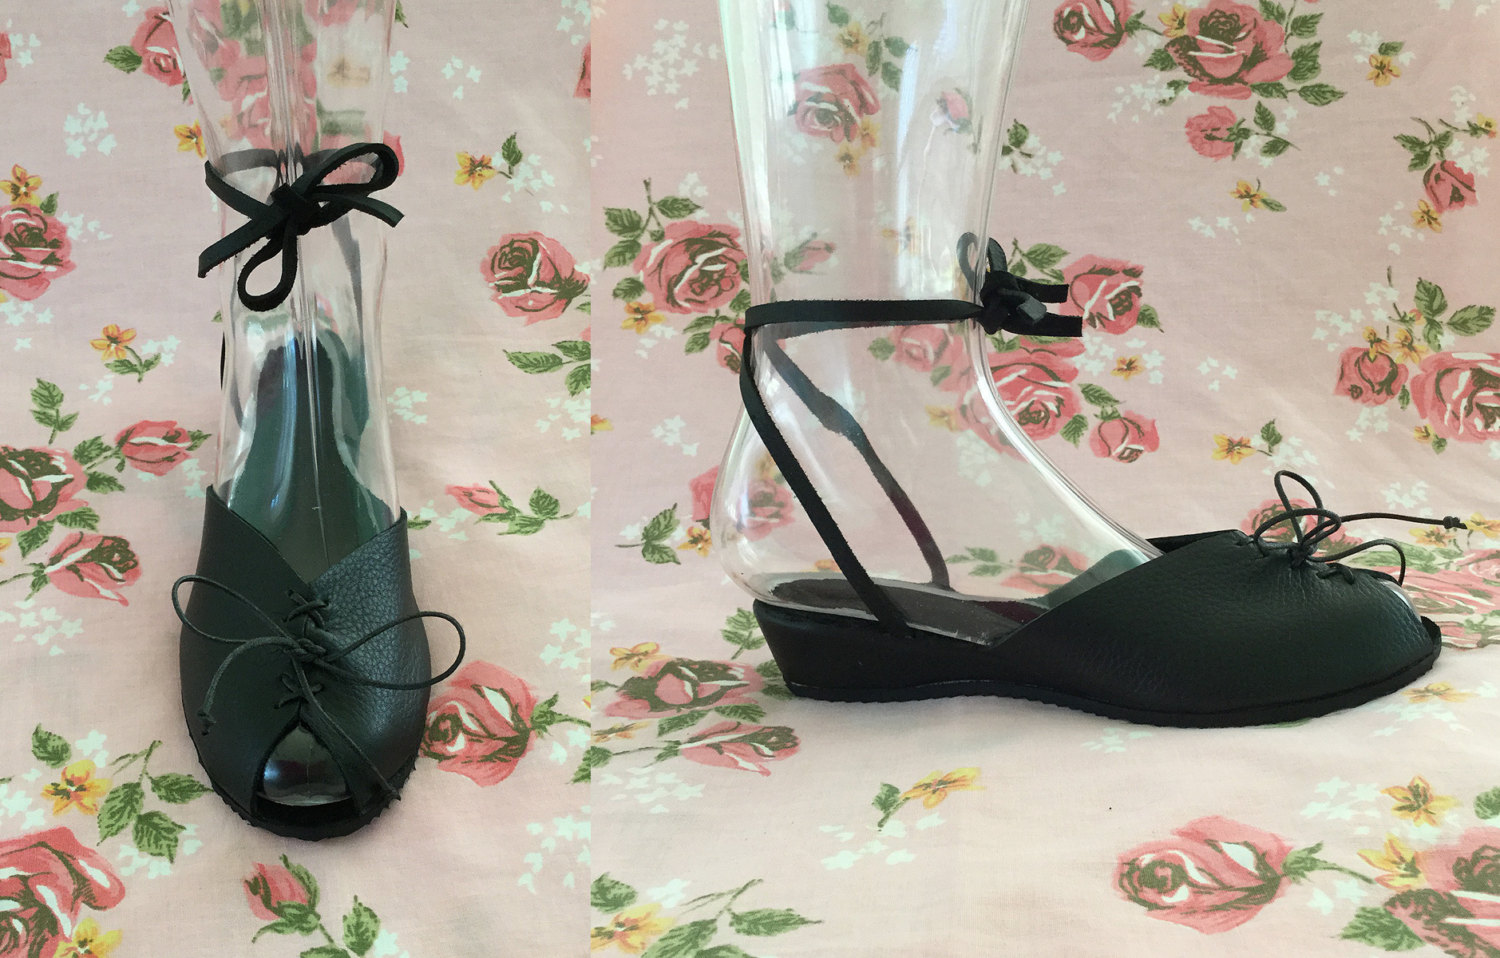 THE AUDREY - 1940's Inspired Solid Black Leather Adjustable Ankle Strap Wedge Sandal with Lace-Up Front - Sizes 5 to 12